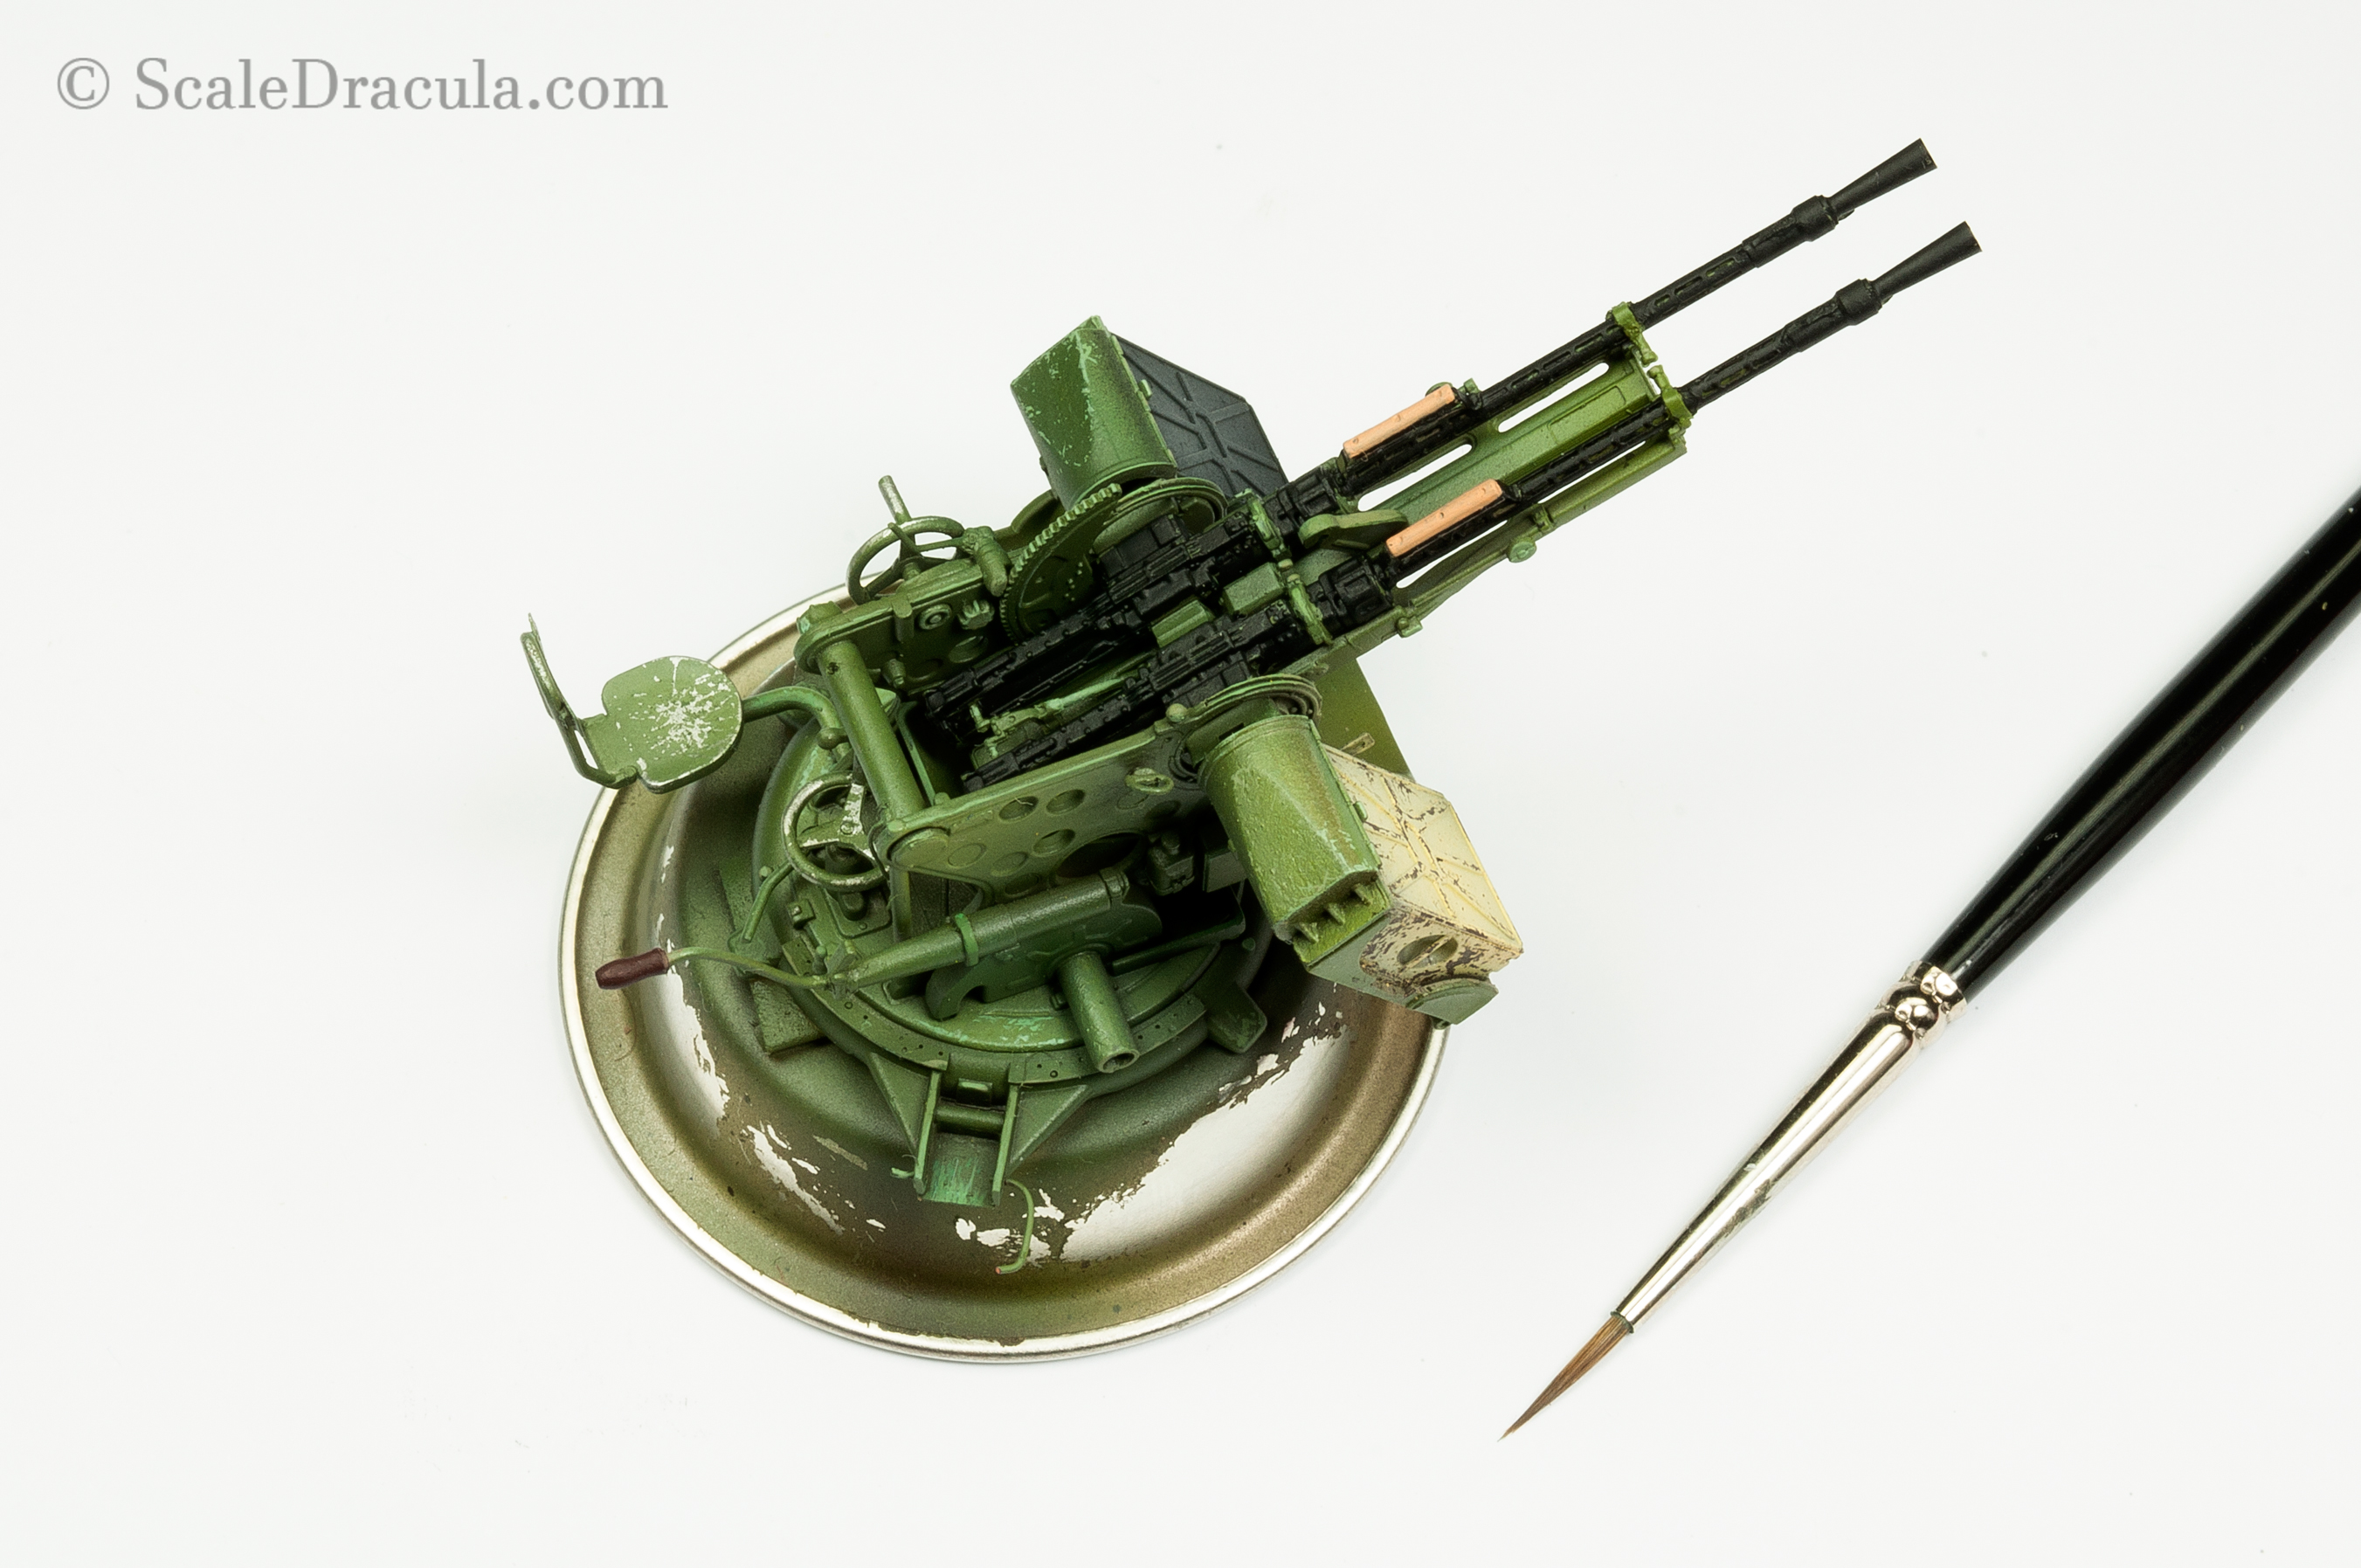 Painting the ZPU-2 gun, Toyota technical by Meng